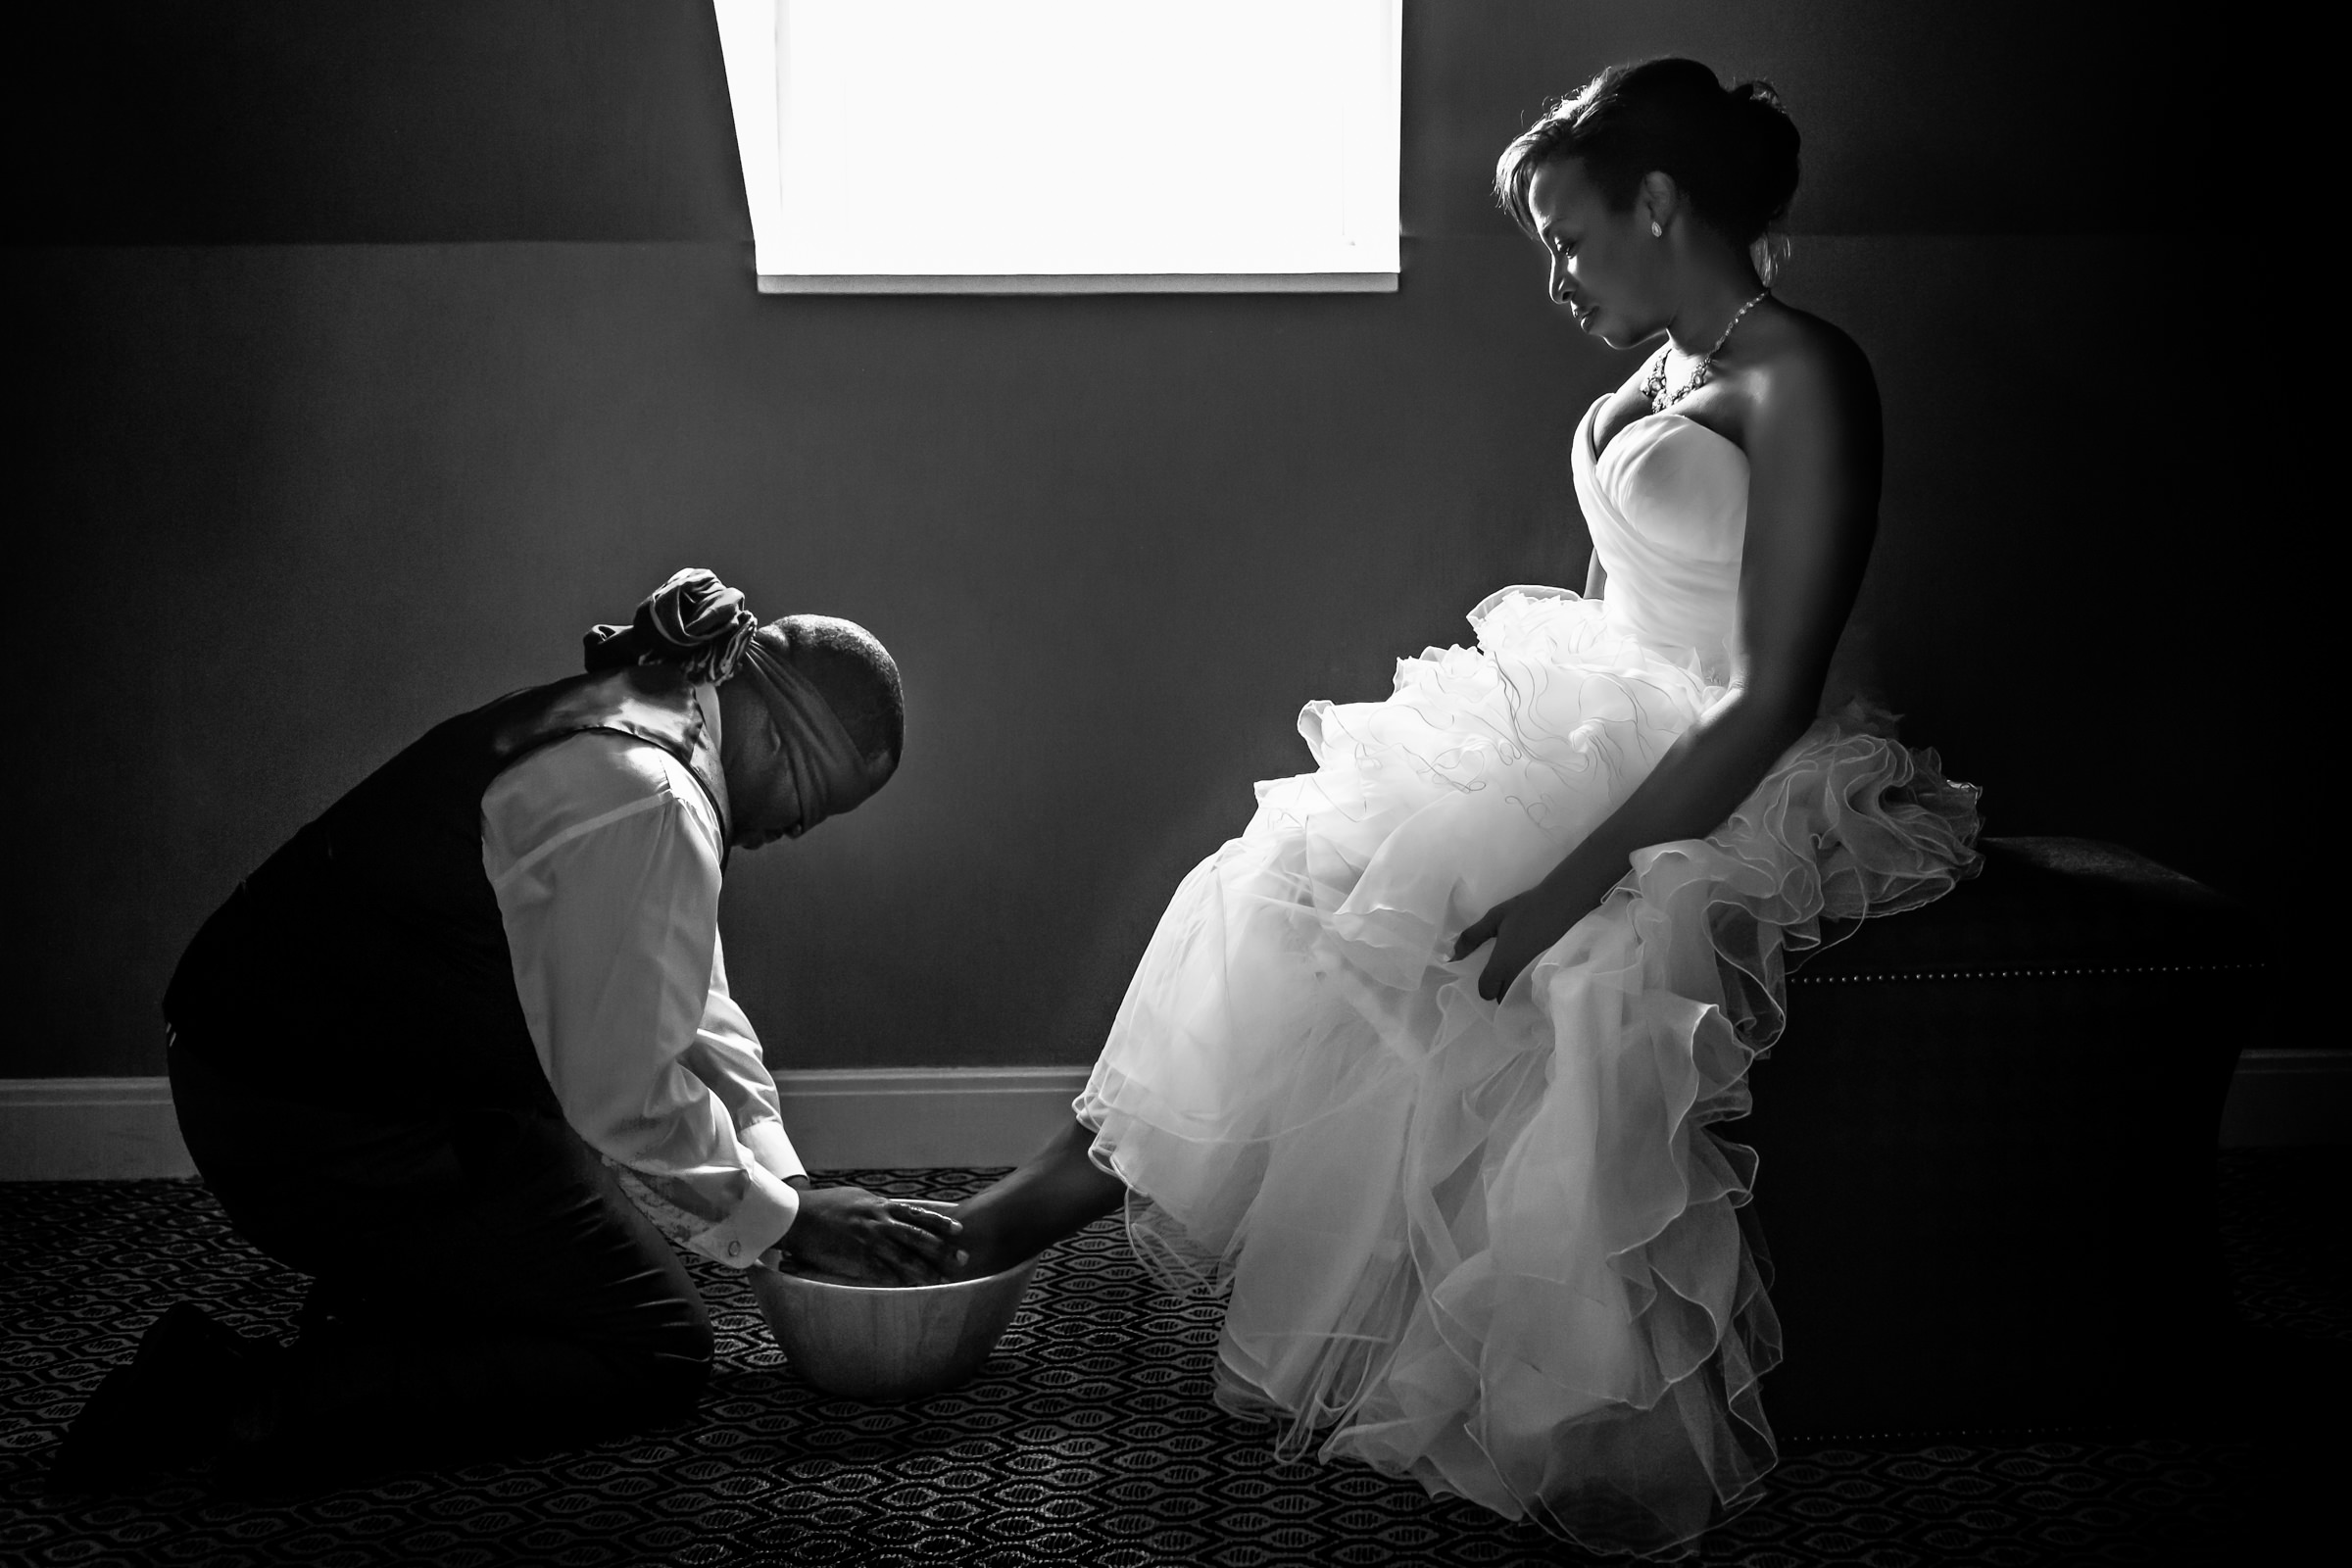 Blindfolded groom washing bride's feet - photo by Procopio Photography